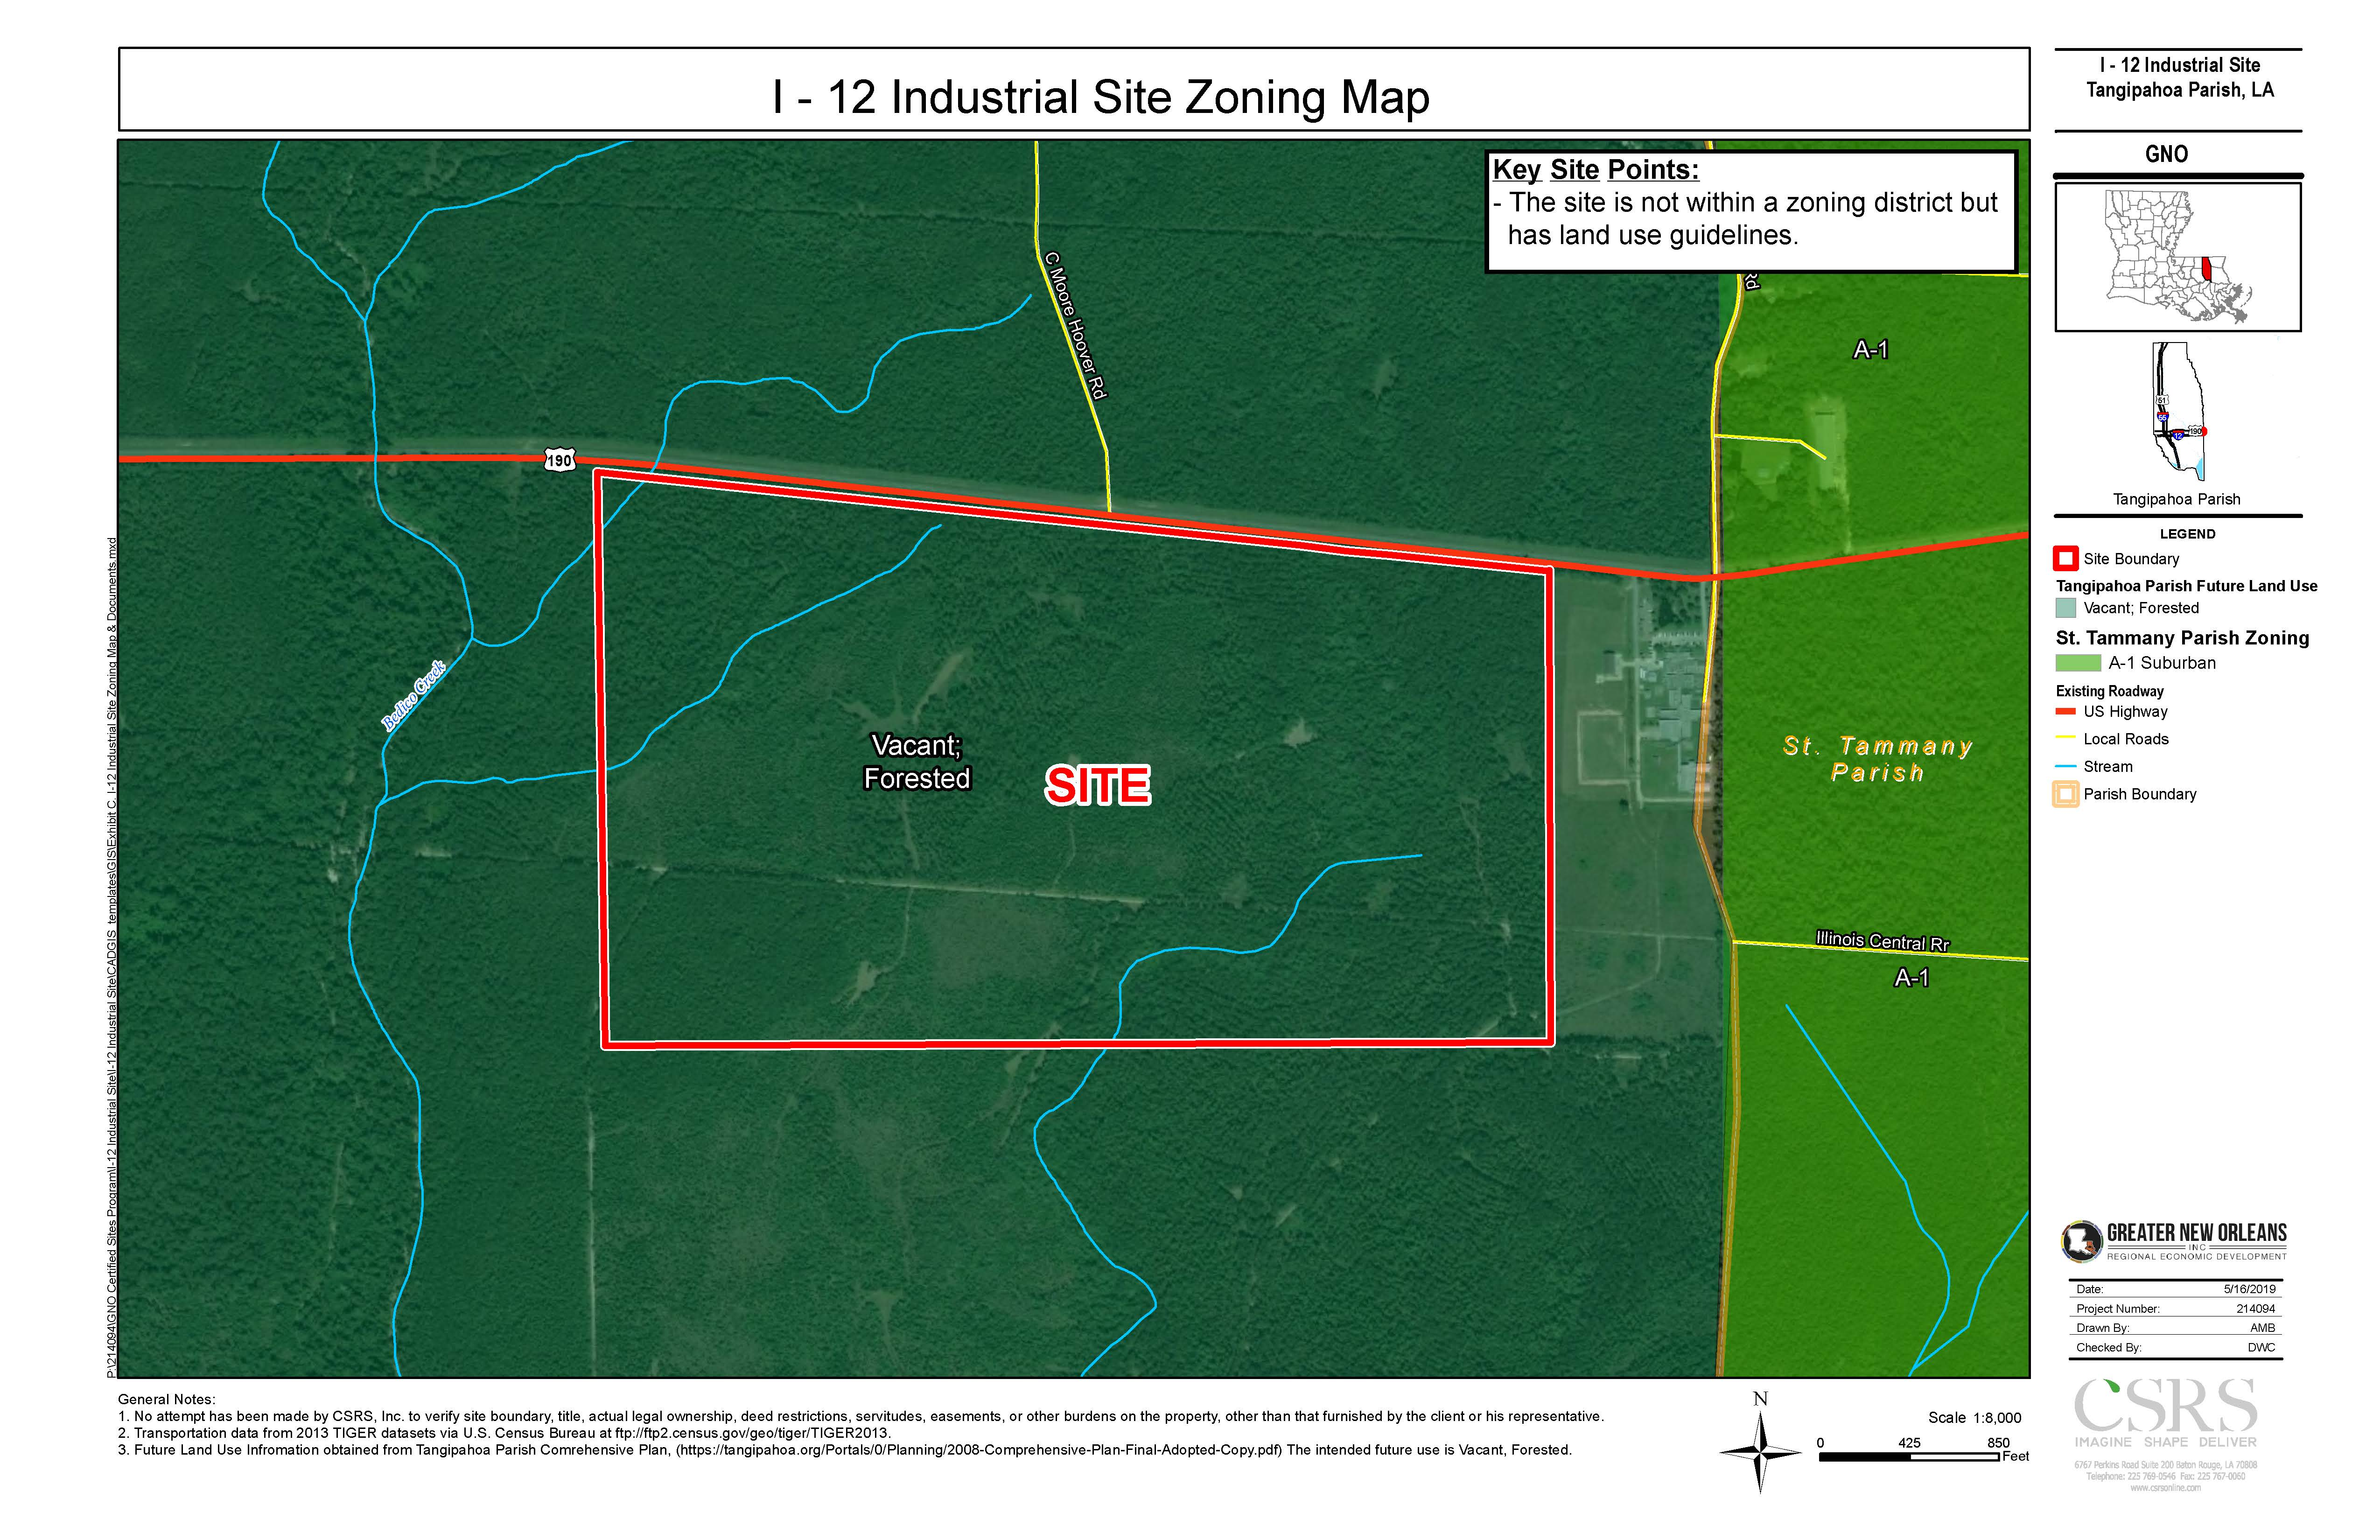 I-12 Industrial Site Zoning Map Aerial--#4